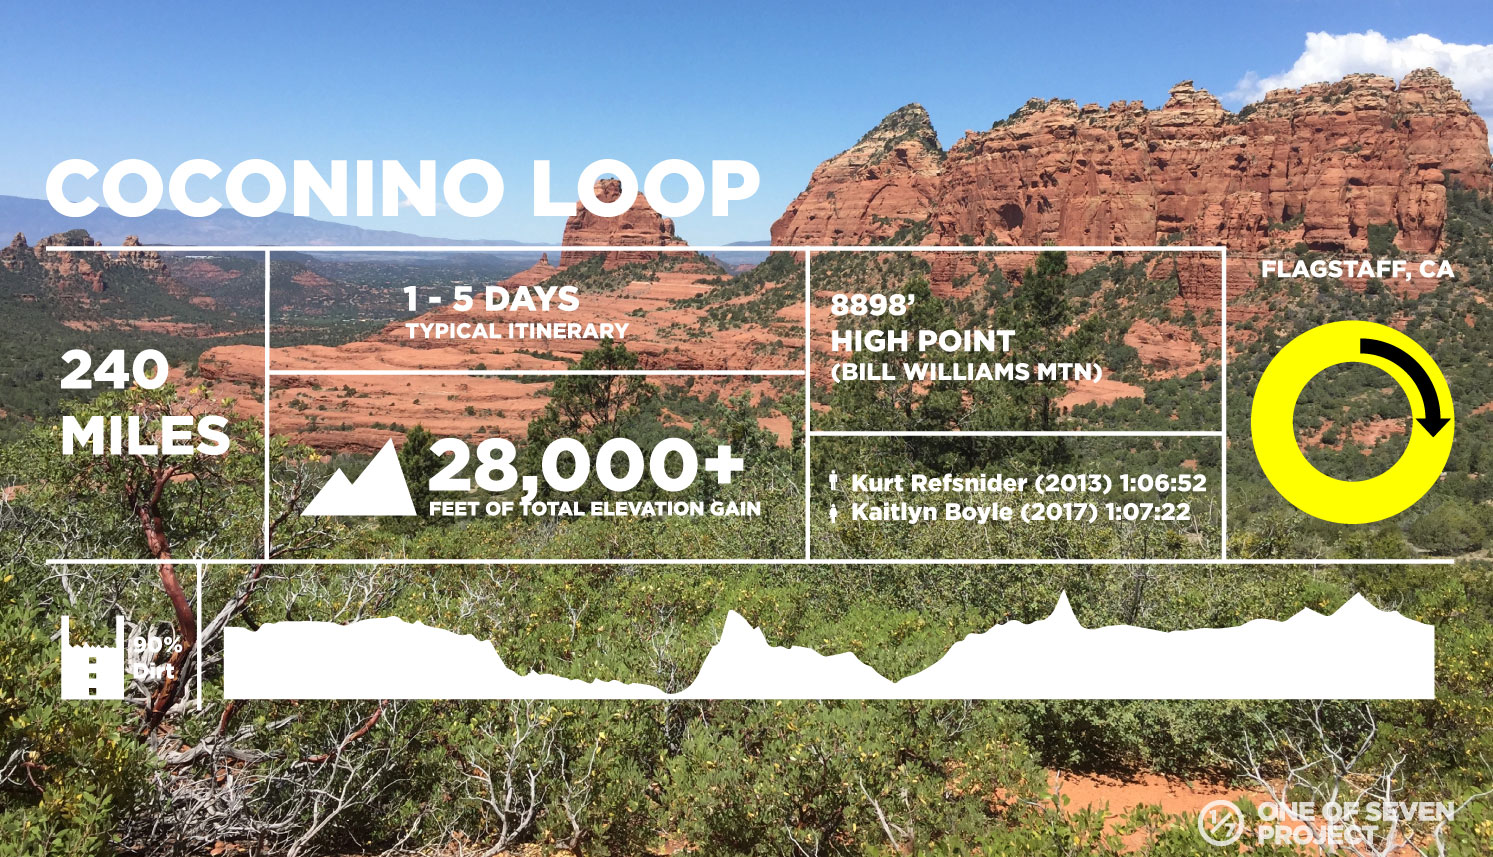 COCONINO-DATA-COLLAGES - BIKEPACKING